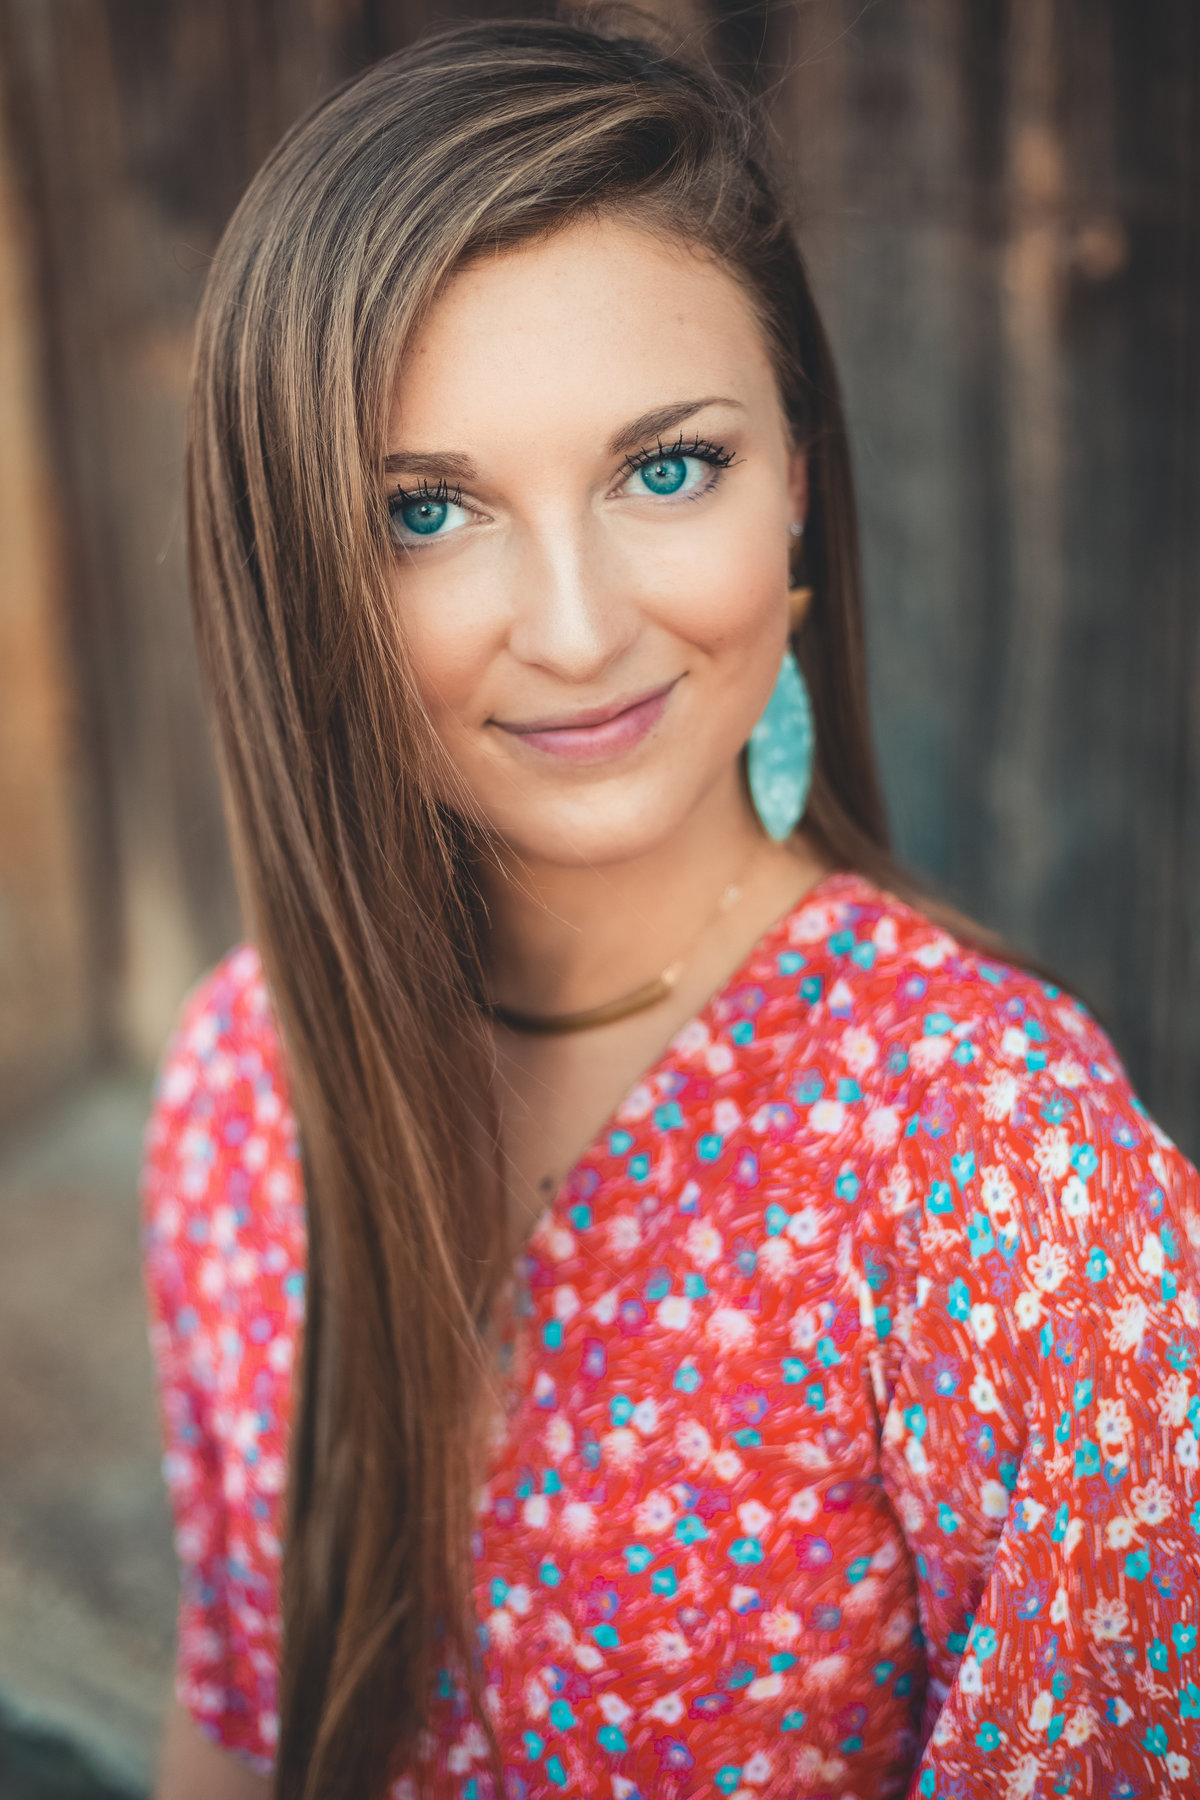 North-Carolina-Senior-Photographer-Lindsay-Corrigan-W2019-9124